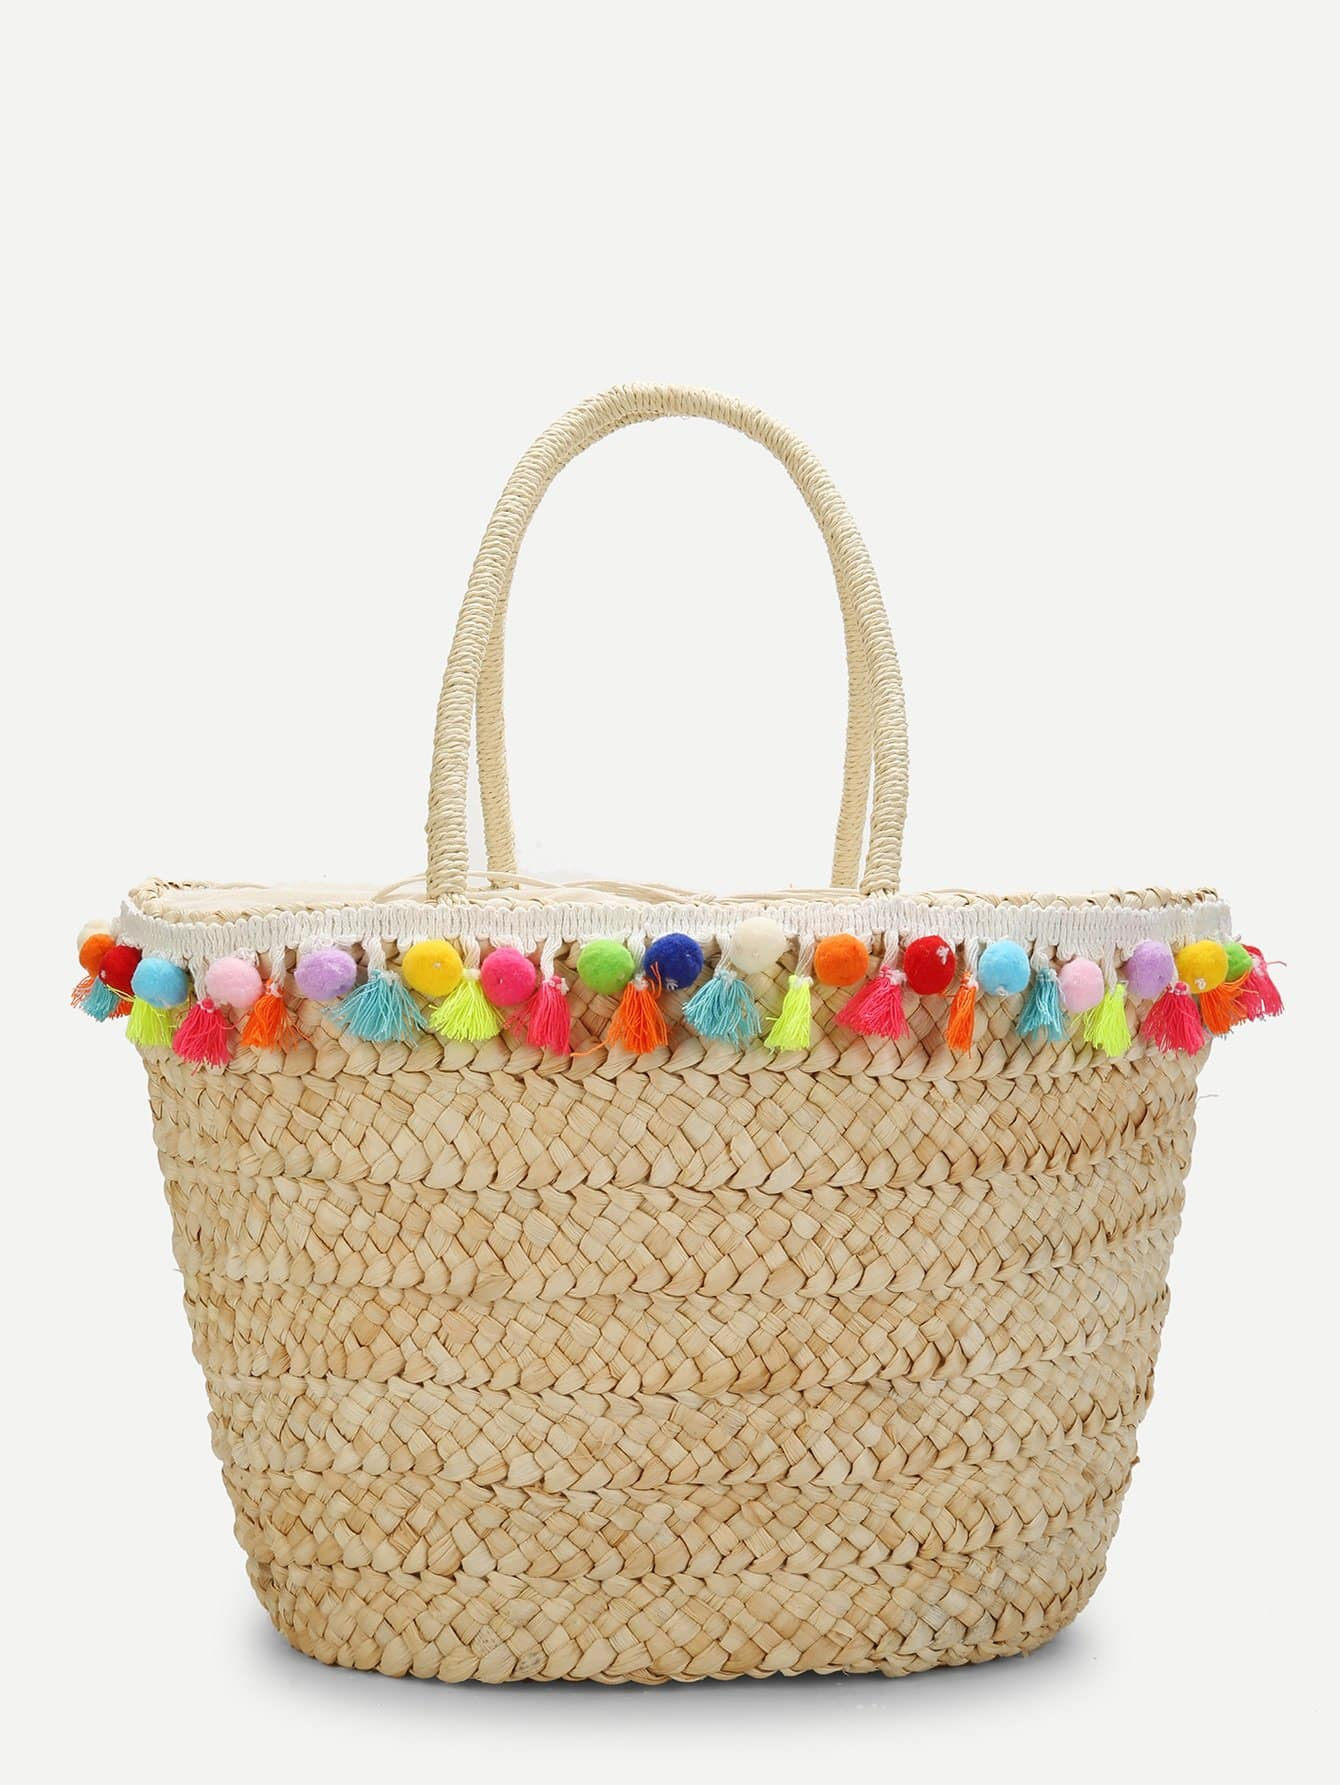 Tassel & Pom Pom Detail Straw Bucket Bag tassel detail straw crossbody bag